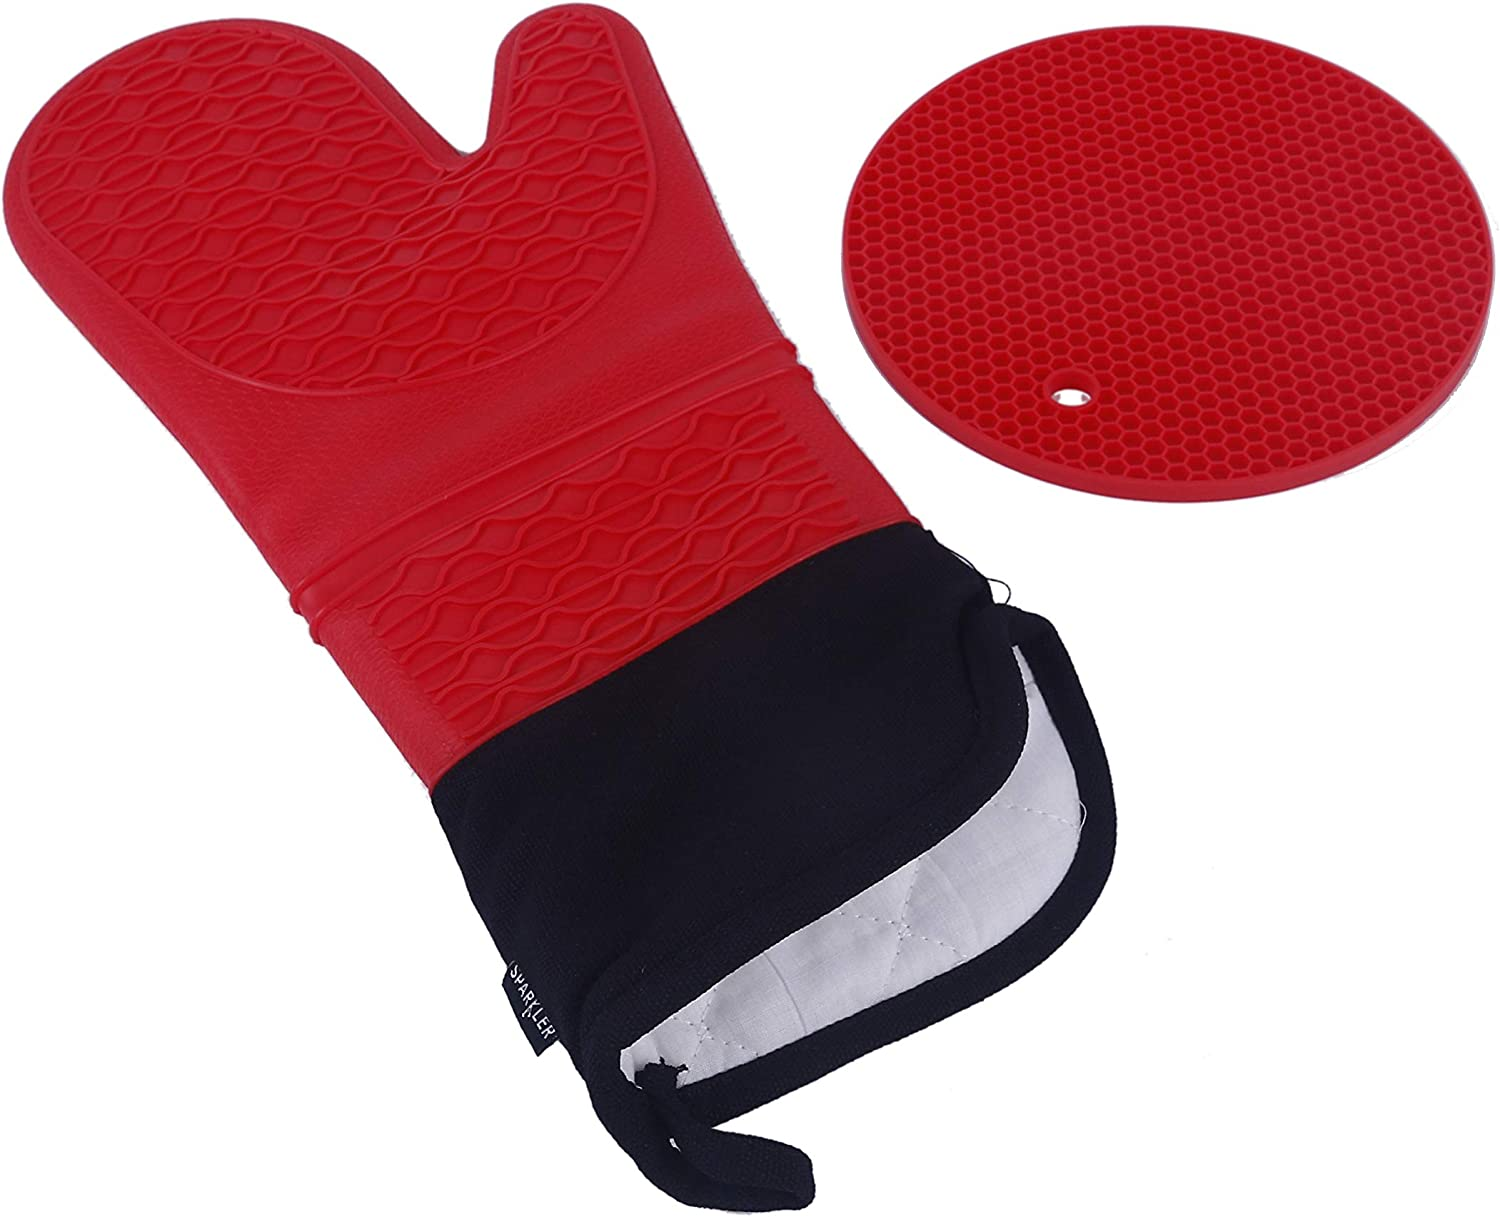 Sparkler Silicone Oven Mitts and Pot Holders-2 Piece Set-15.5-Inch Long Professional Oven Mitt & Pot Holder-Thicker 1/4-Inch Quilted Liner Infill-Kitchen Cooking Gloves Heat Resistant 480 Degrees F